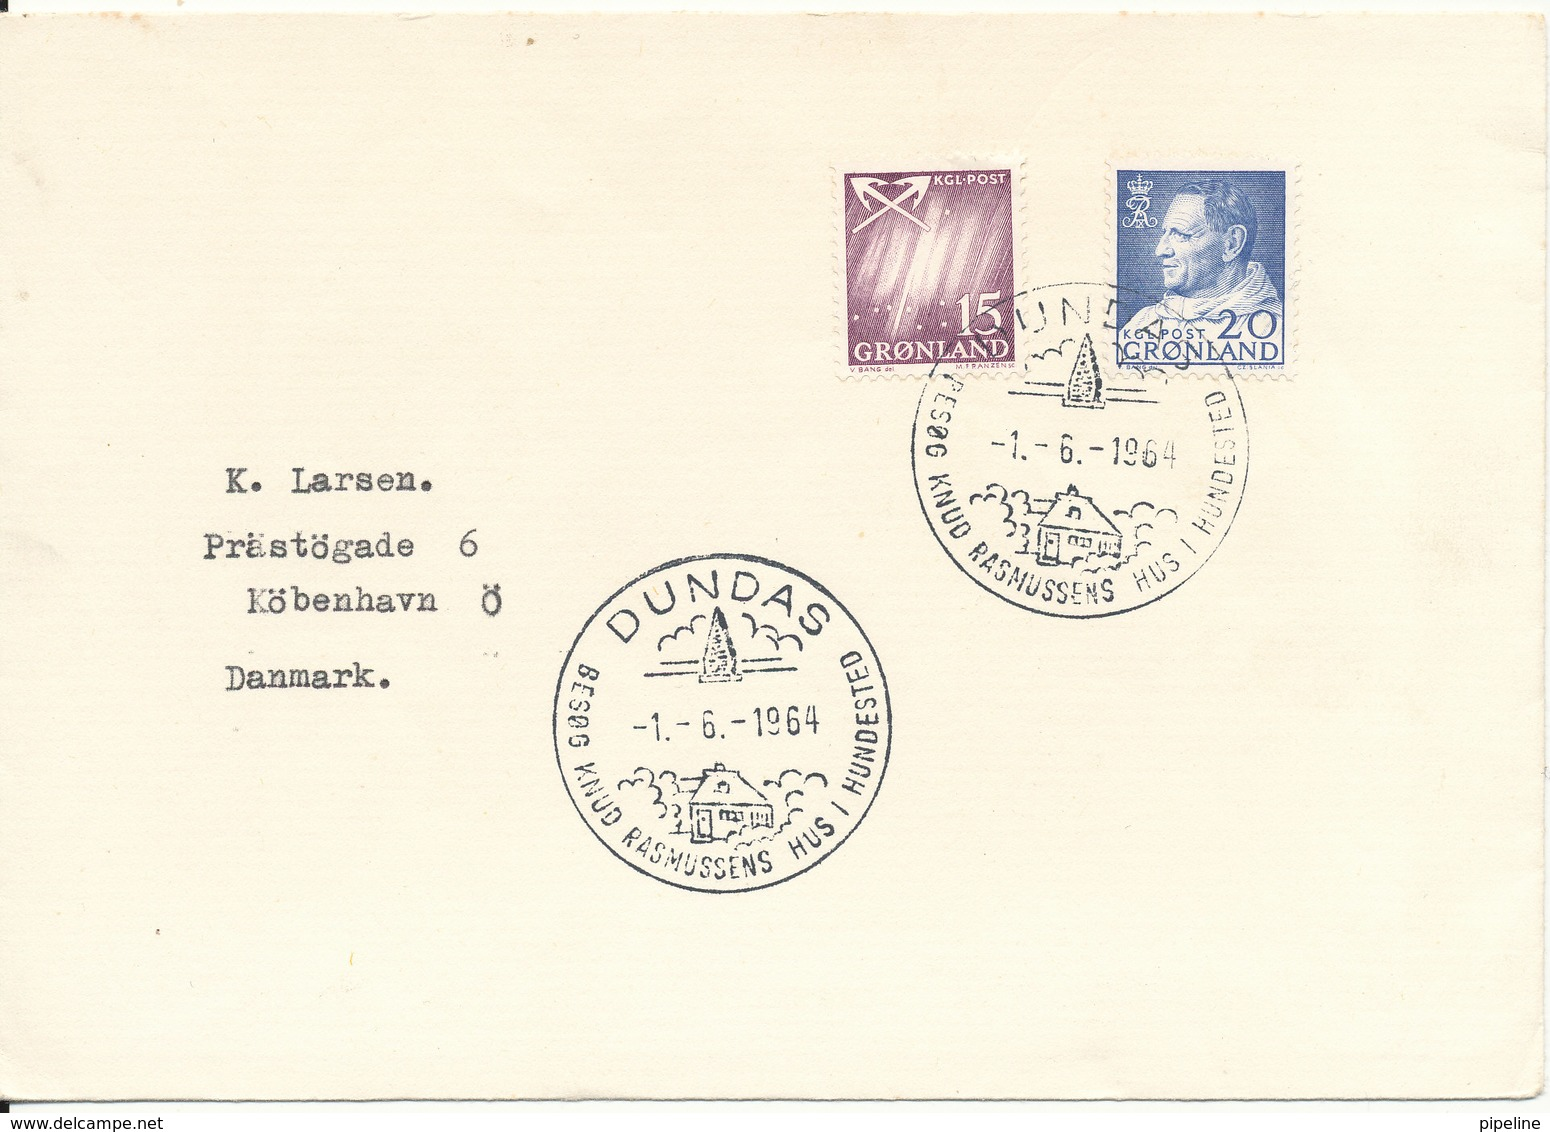 Greenland Cover Sent To Denmark With Special Postmark Dundas 1-6-1964 Visit Knud Rasmussens House In Hundested - Groenland